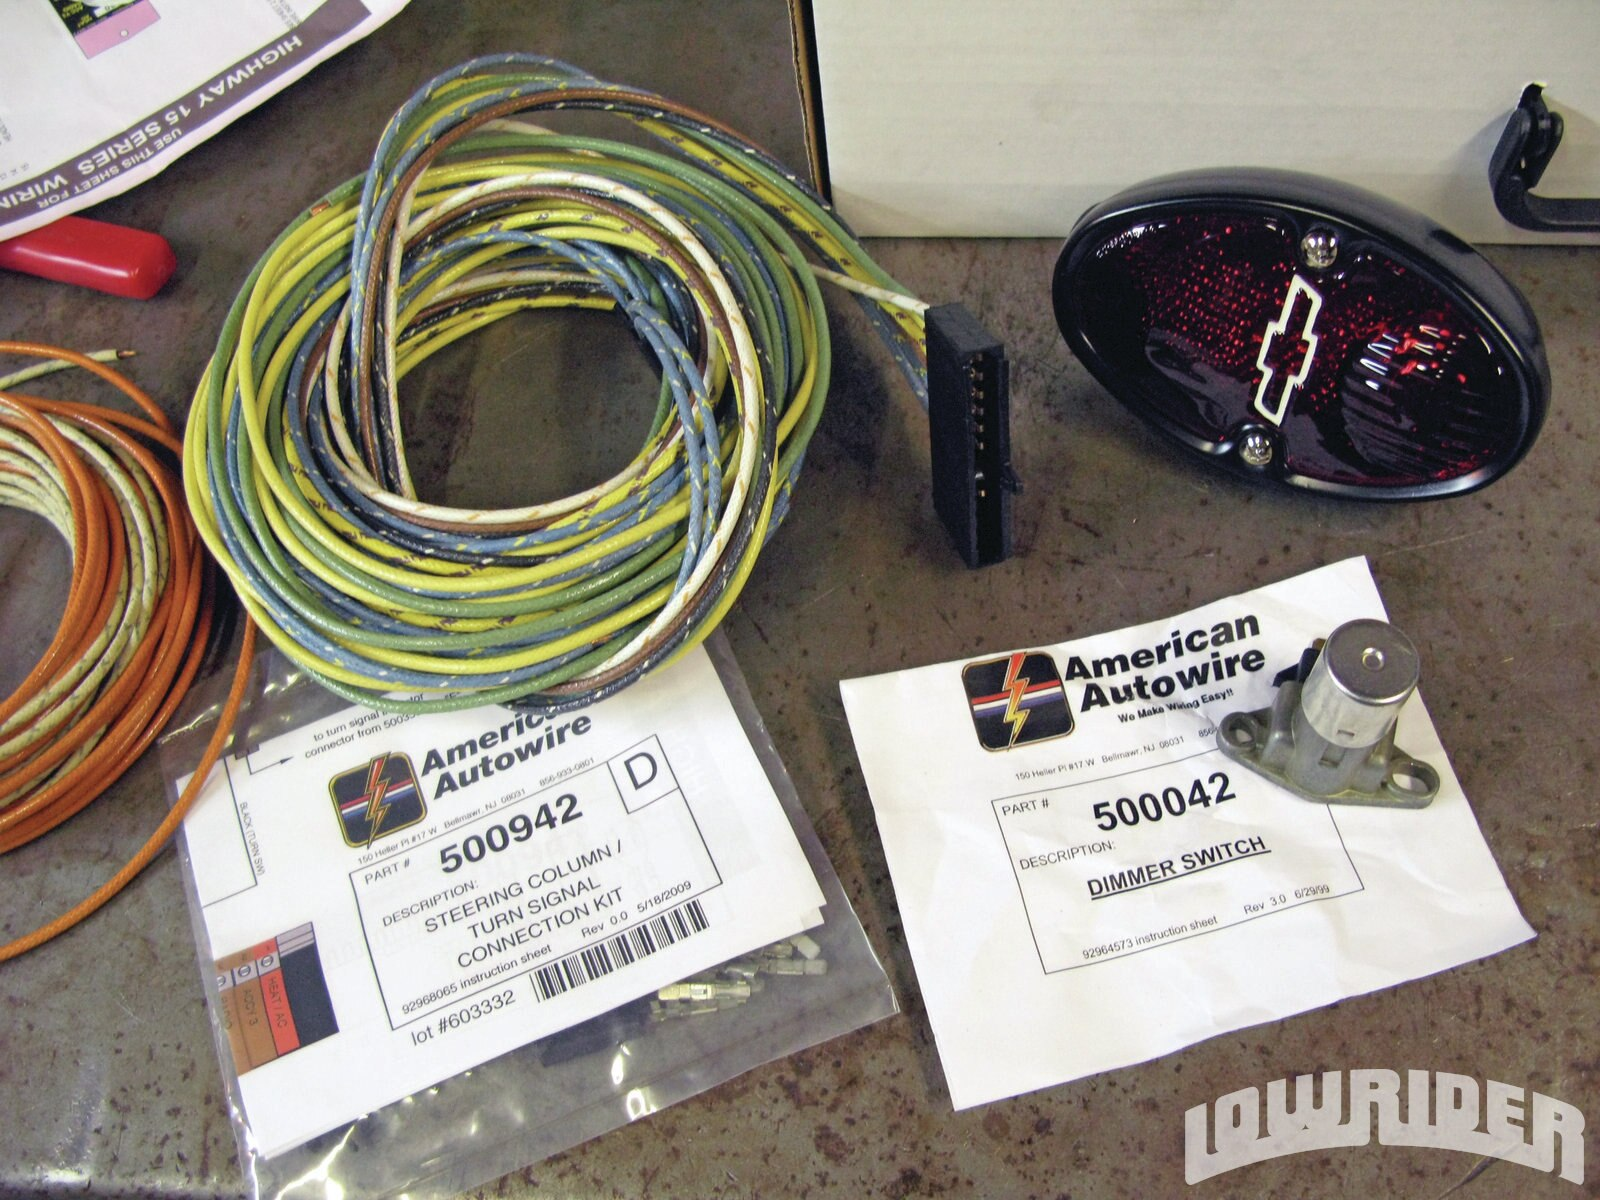 1304 lrmp 24 o american autowire highway 15 wiring brake light wires american autowire highway 15 nostalgia wiring kit lowrider magazine Wiring Harness Diagram at virtualis.co